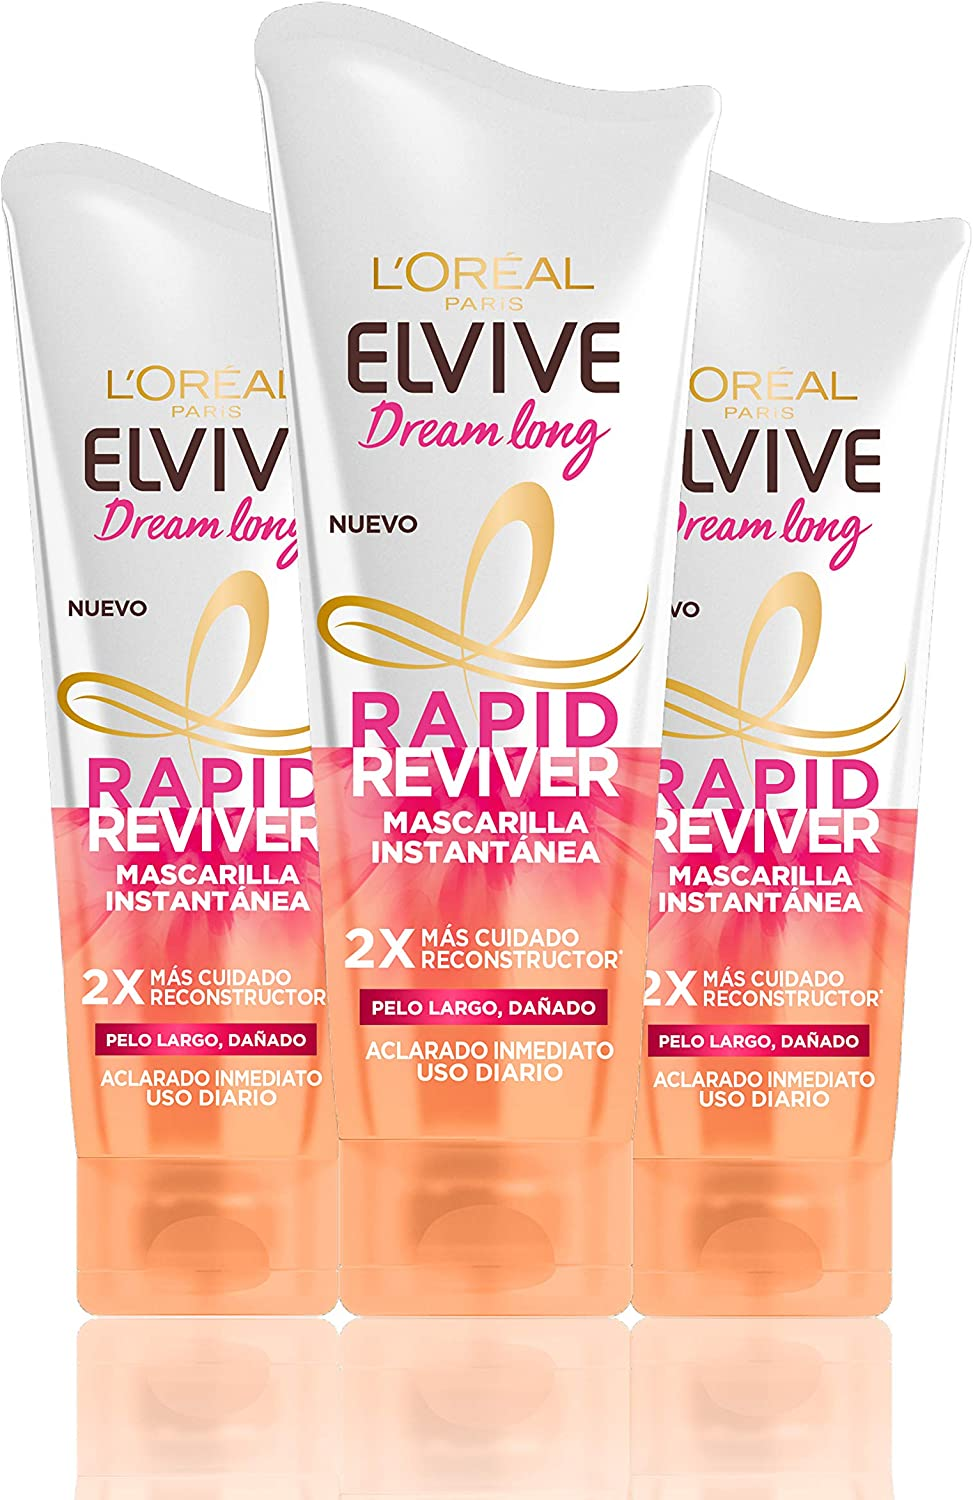 L'Oreal Paris Elvive Dream Long Rapid Reviver Mascarilla Instantánea Reconstructora, para pelo largo dañado - pack de 3 unidades x 180 ml